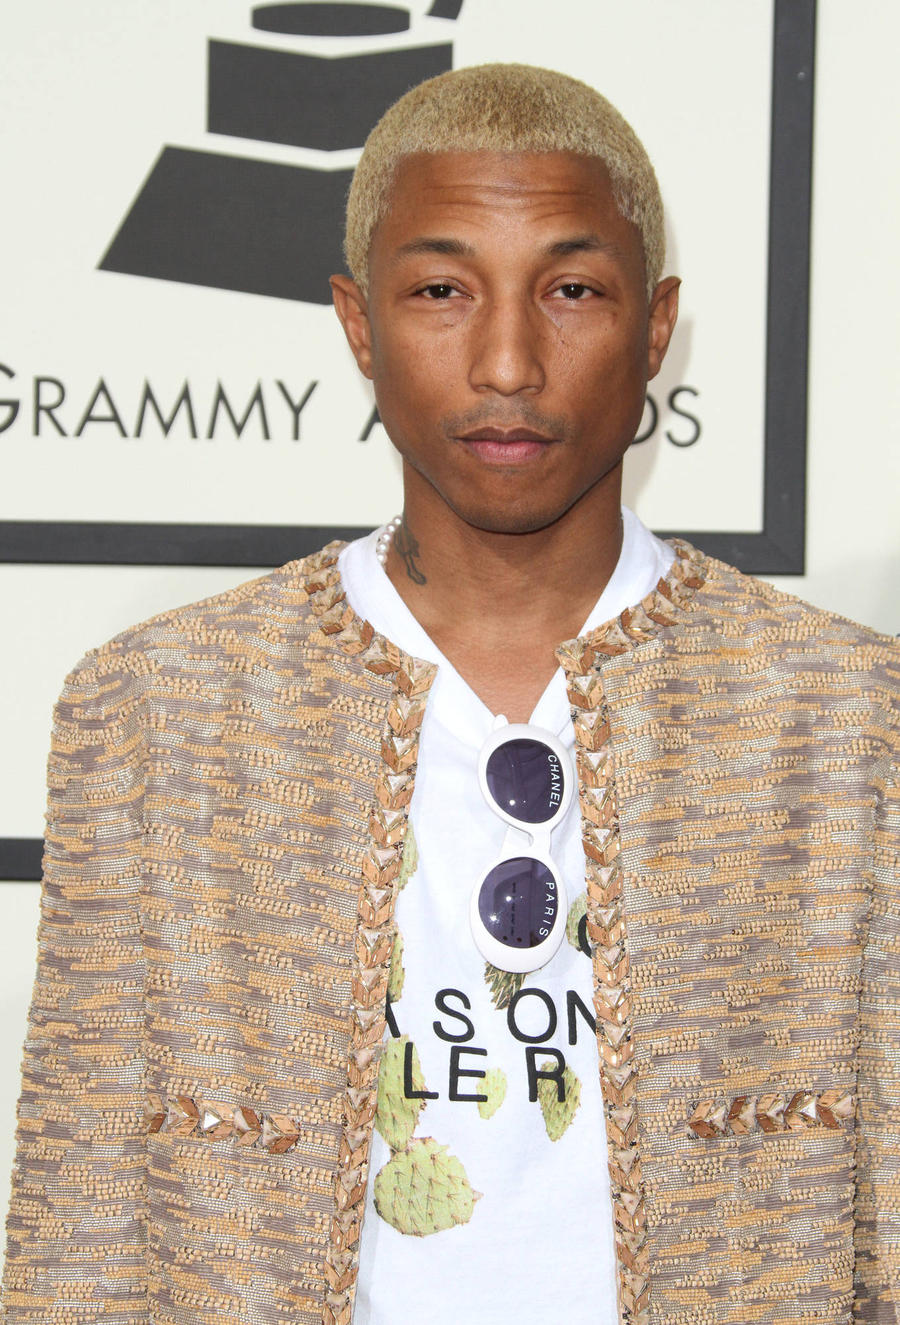 Pharrell Williams Aims To Fight Divisiveness With New School Supplies Collection